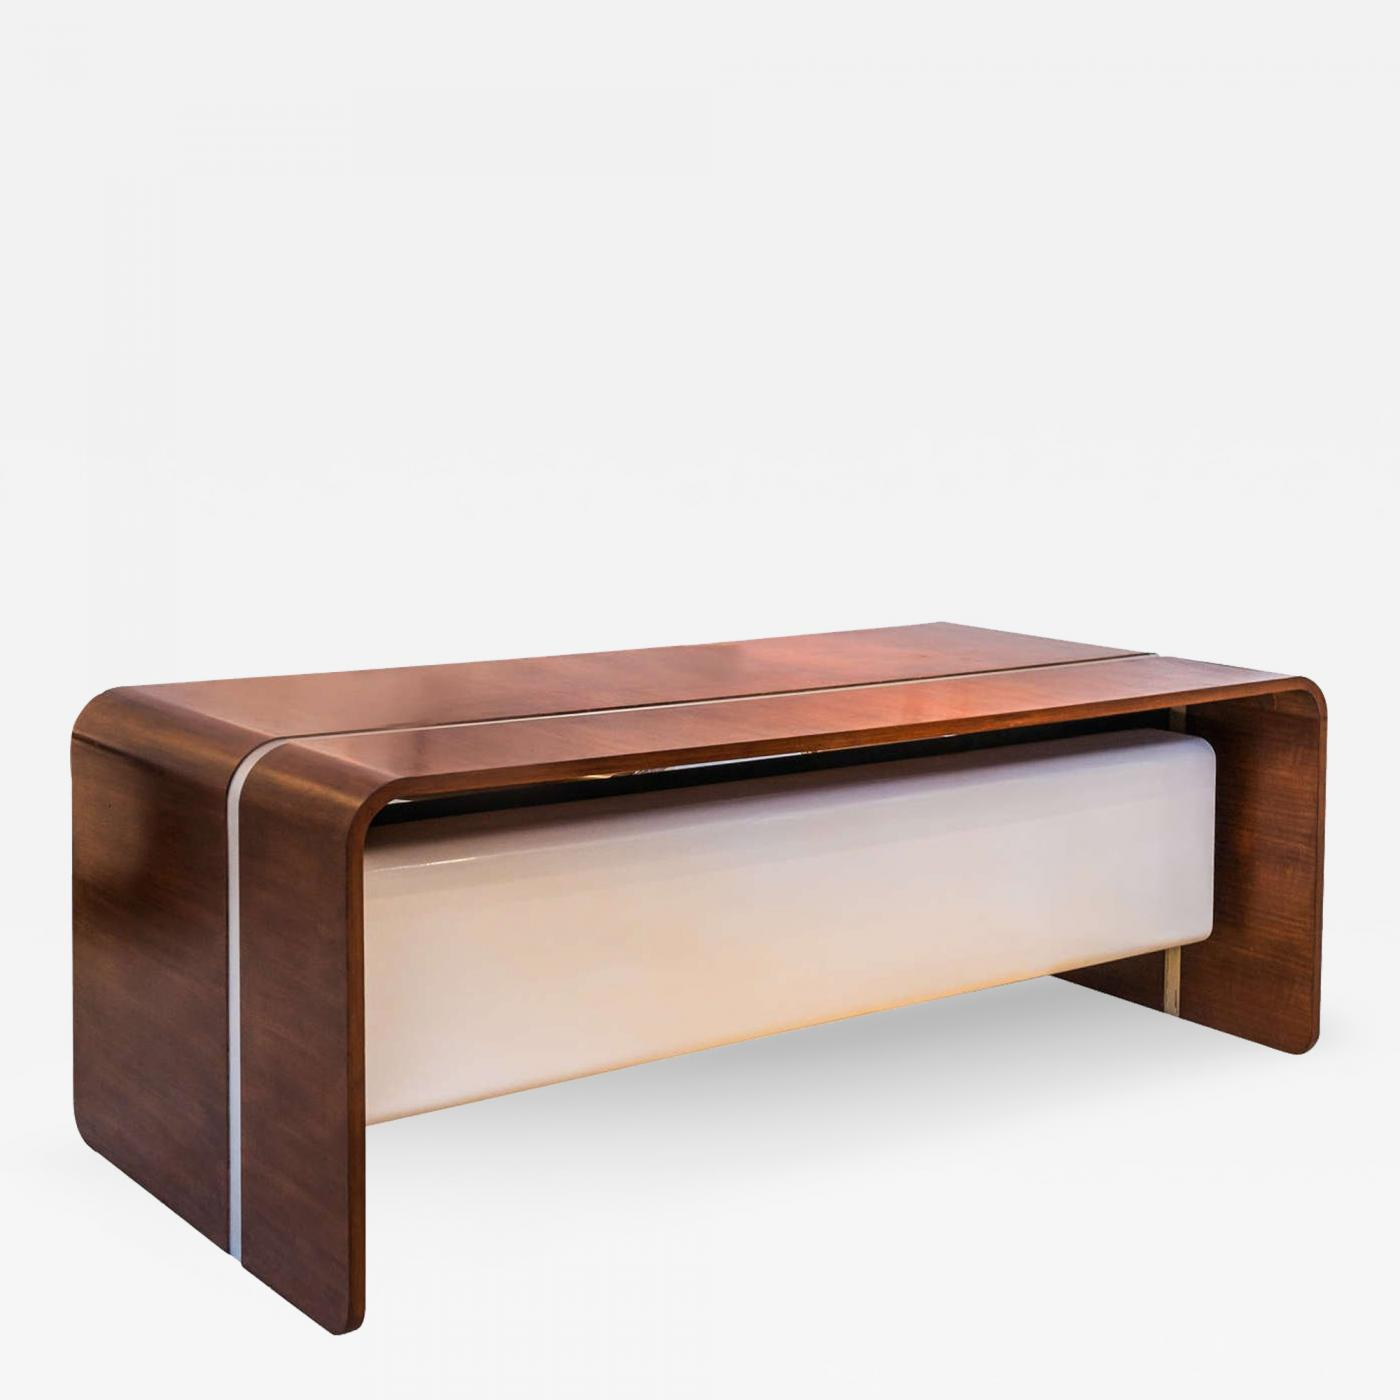 Exceptional Listings / Furniture / Case Pieces / Desks   Secretaries